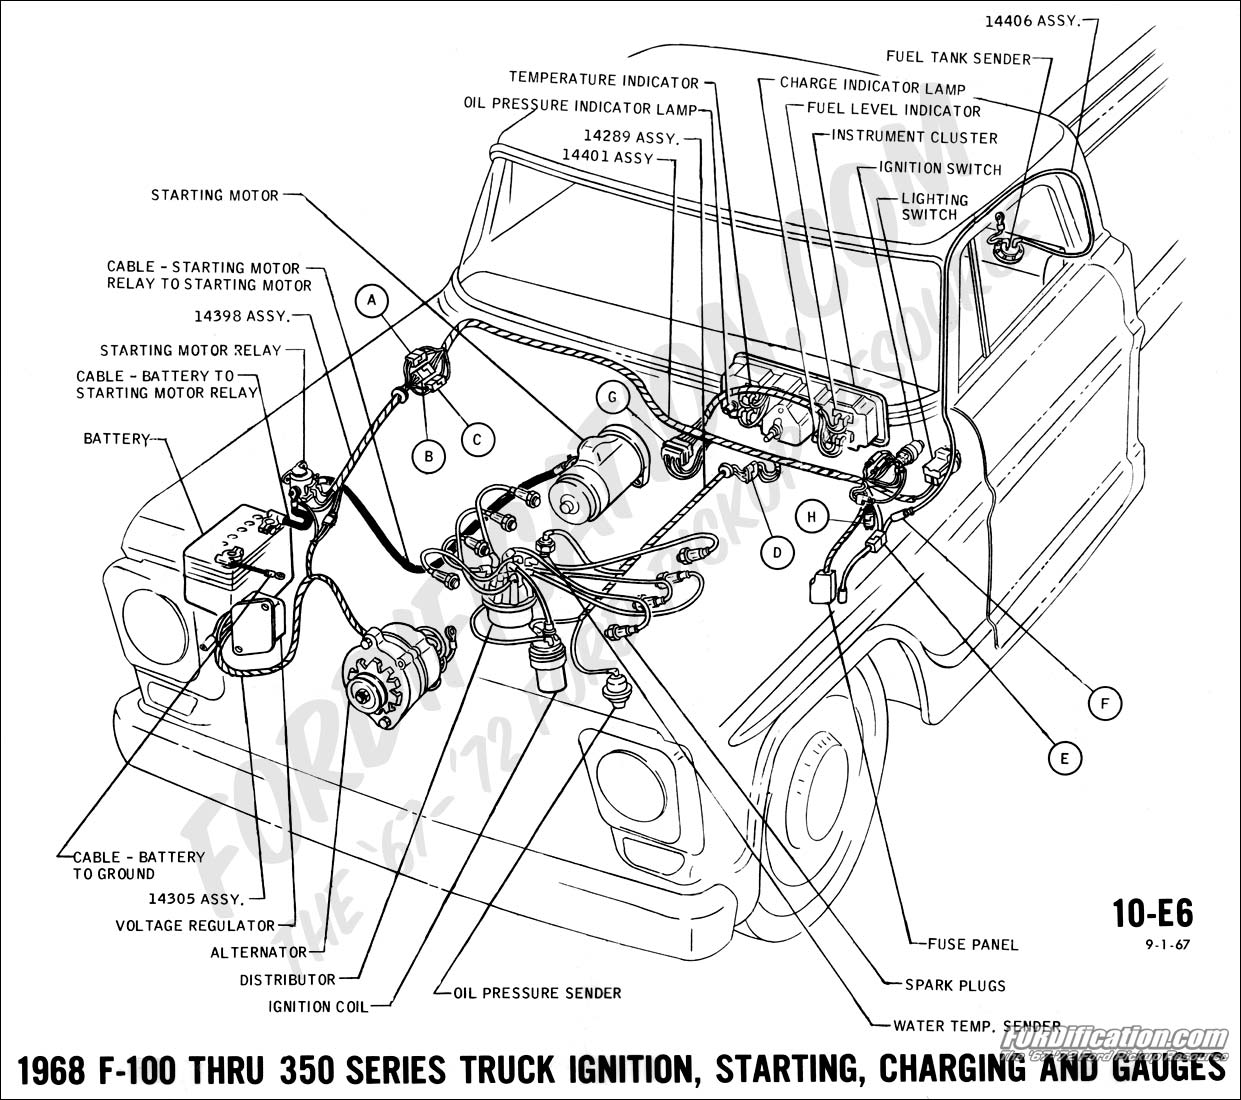 68 08 ford truck technical drawings and schematics section h wiring 1969 Ford F100 Steering Column Wiring Diagram at crackthecode.co